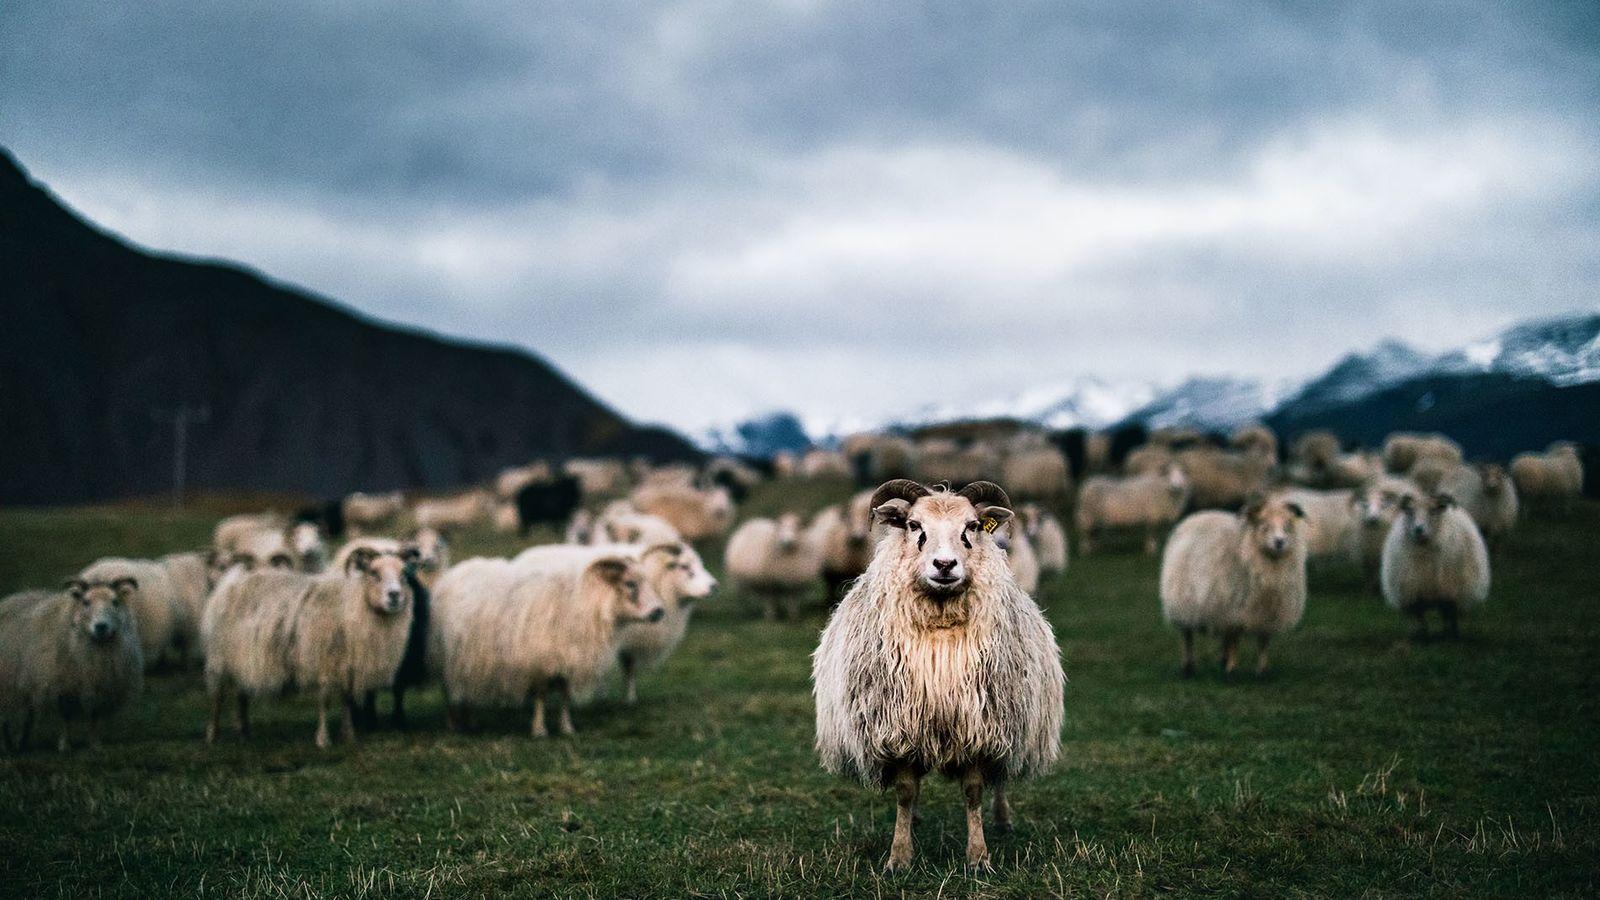 Icelandic sheep are high-tempered, independent animals, and they're used to living in tough conditions.